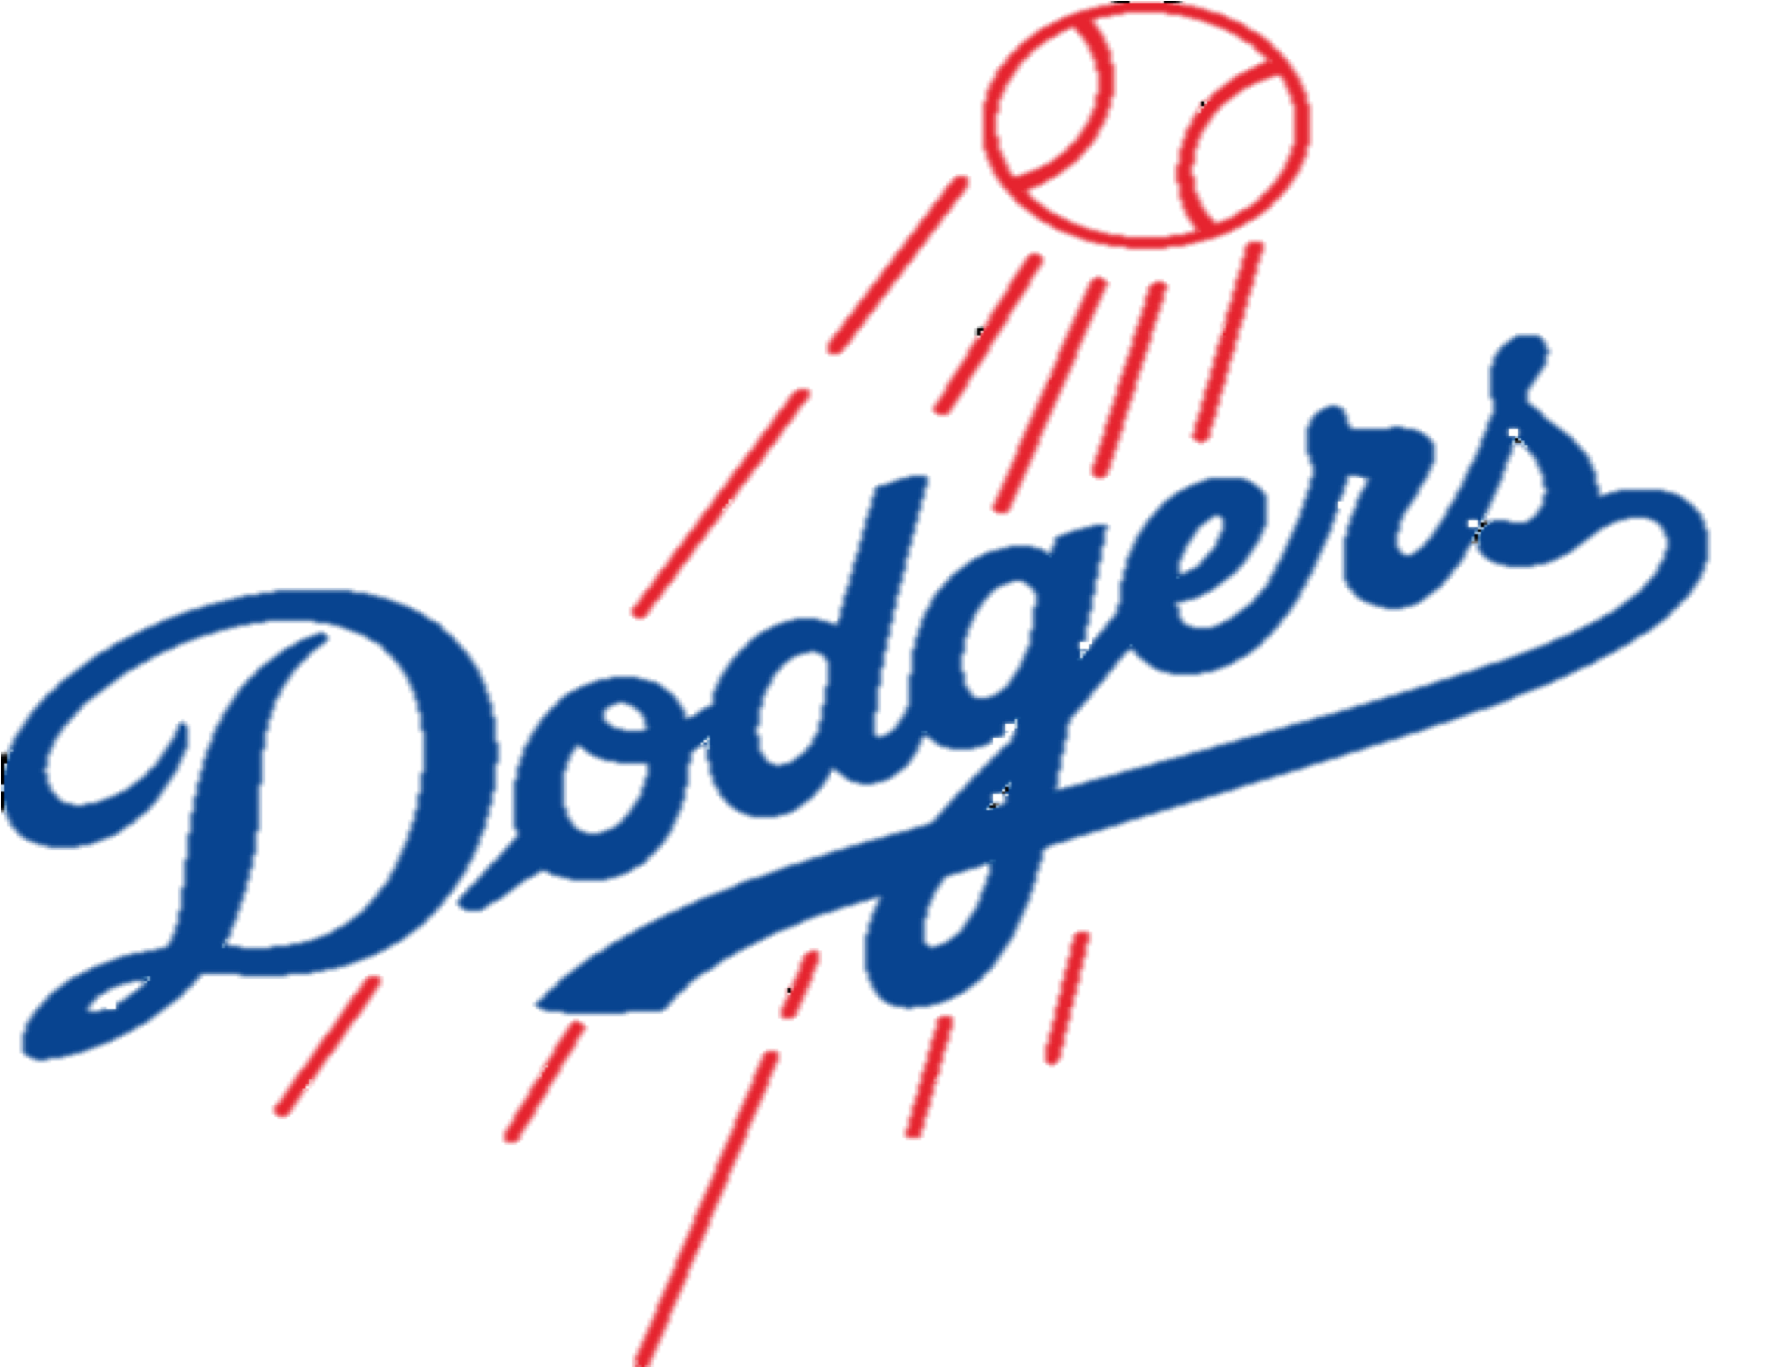 Angels baseball logo png. Dodger logos wallpapers search